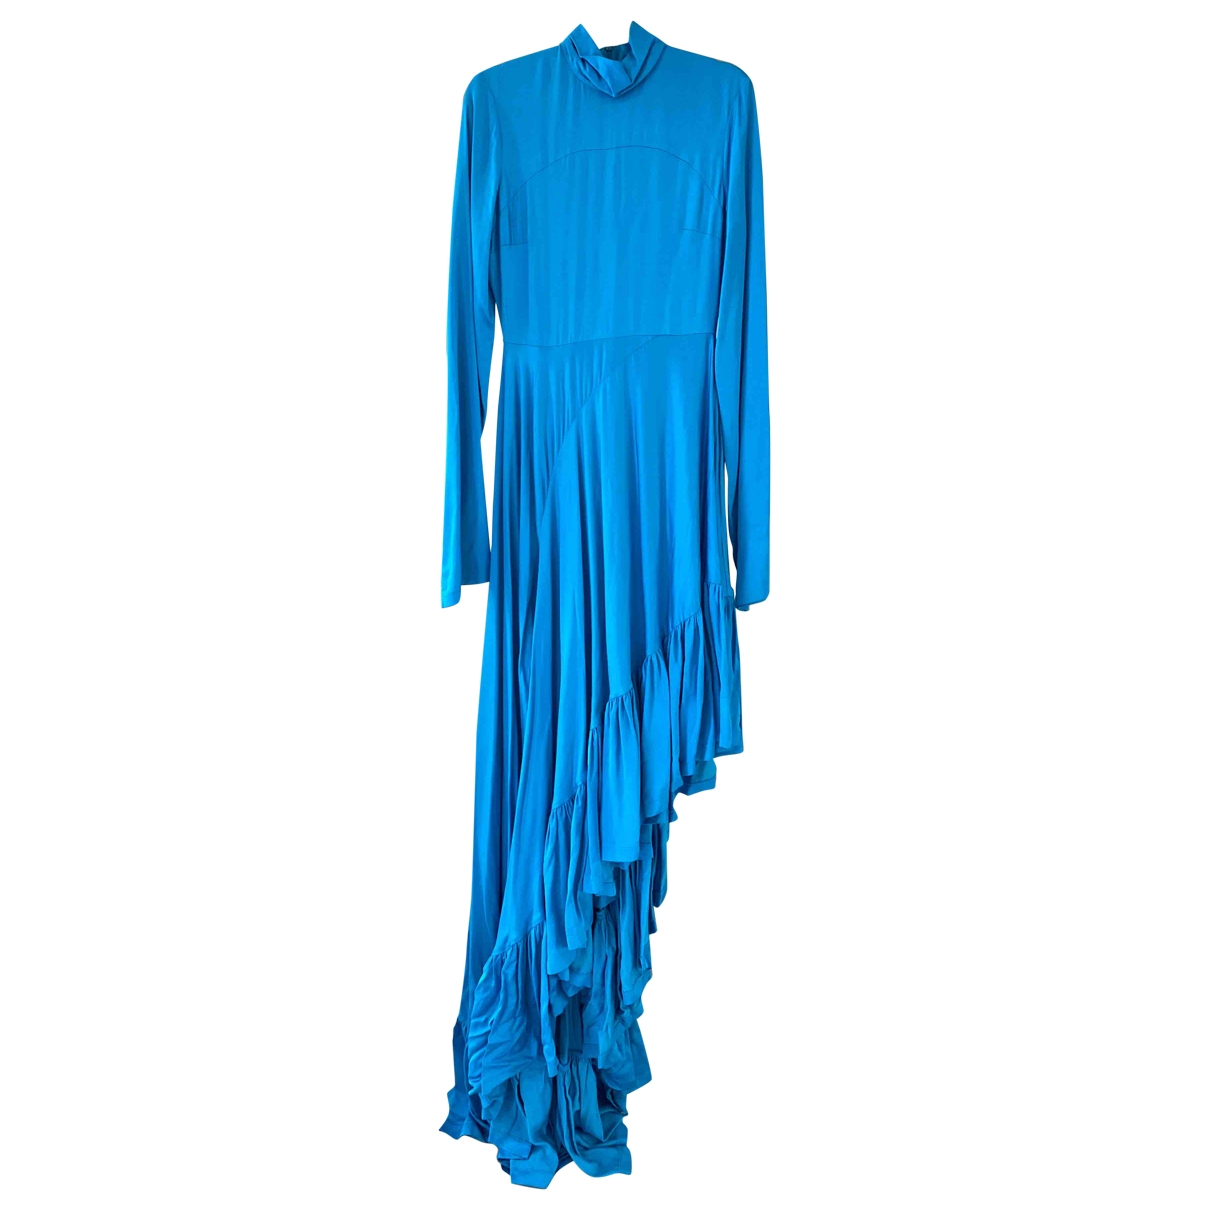 Solace London \N Blue dress for Women 36 FR